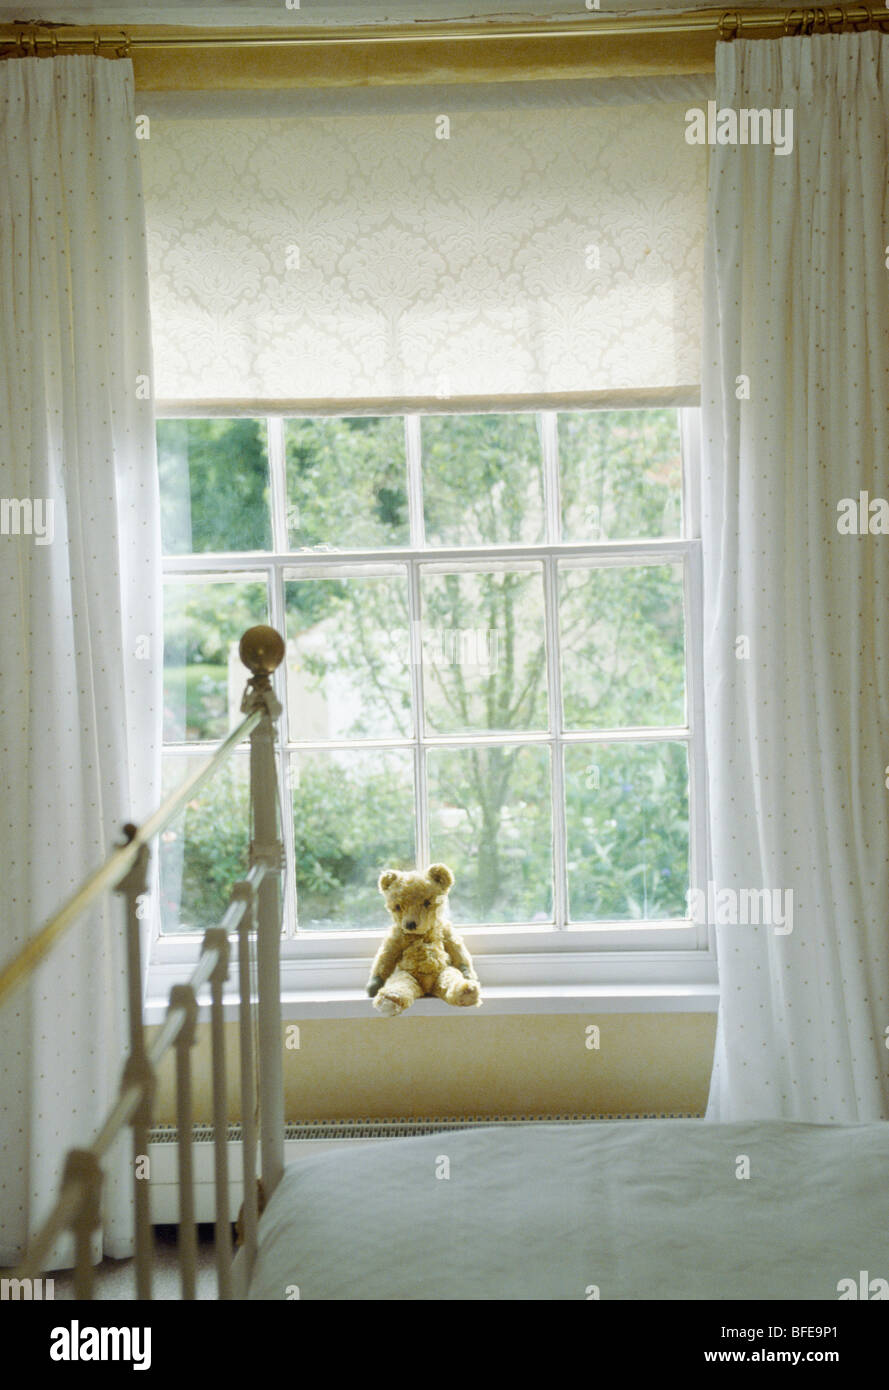 White lace bedroom curtains - Stock Photo Teddy Bear On Window Sill Of Window With Cream Lace Blind And White Curtains In White Country Bedroom With Antique Brass Bed